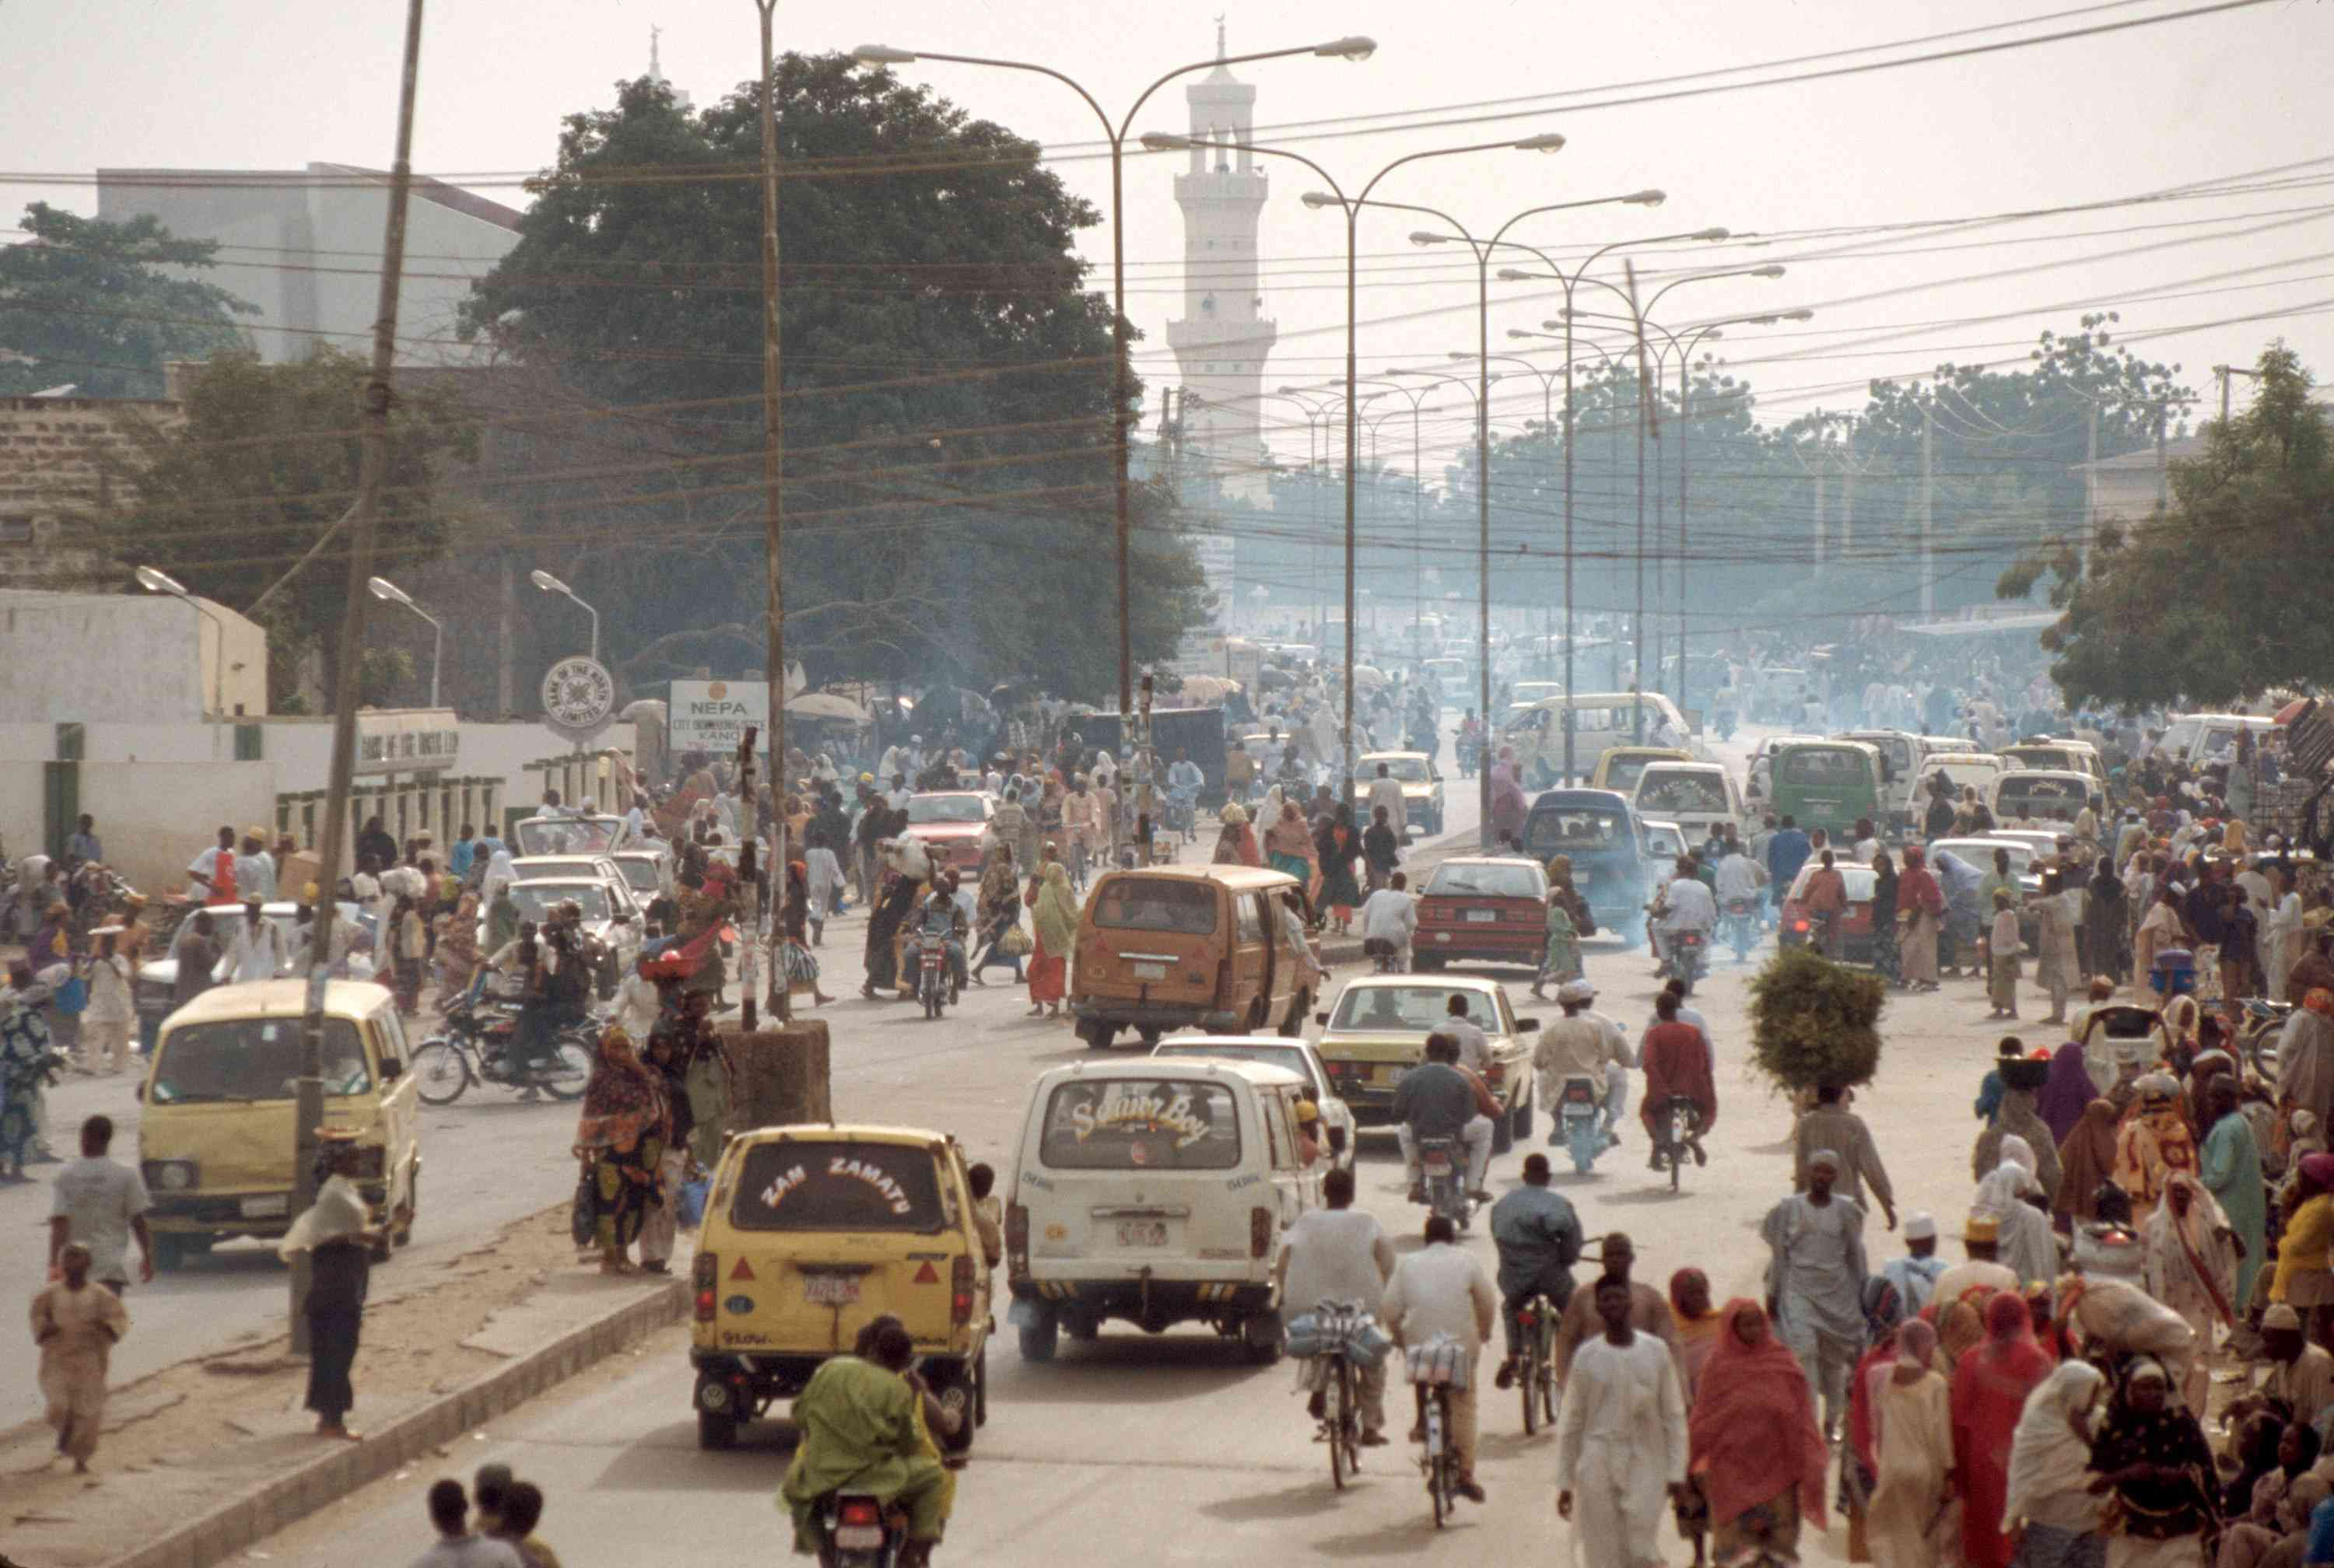 traffic is seen in the streets of the old city of Kano,